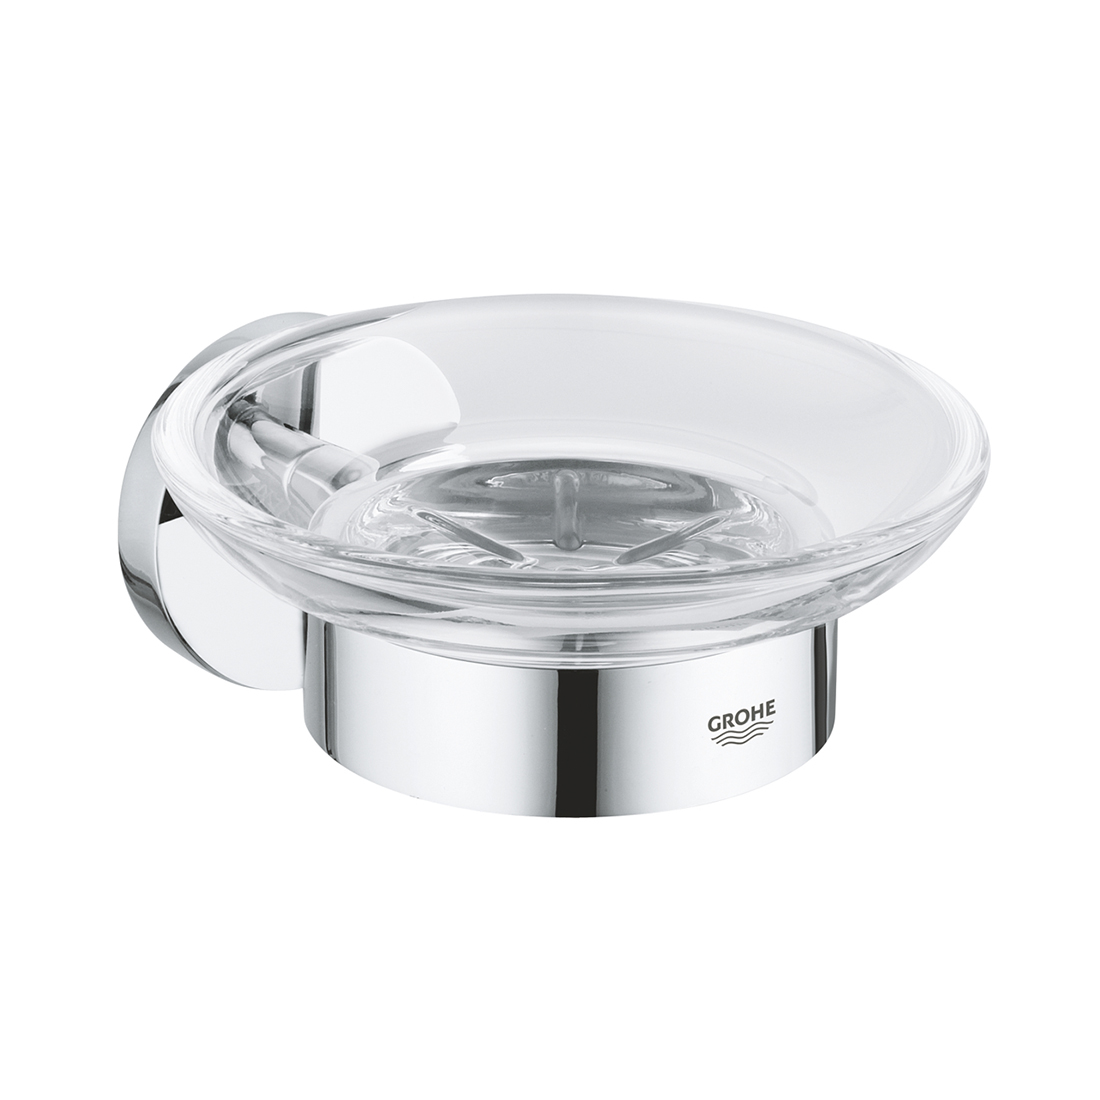 Grohe 40444001 Essentials Soap Dish with Holder